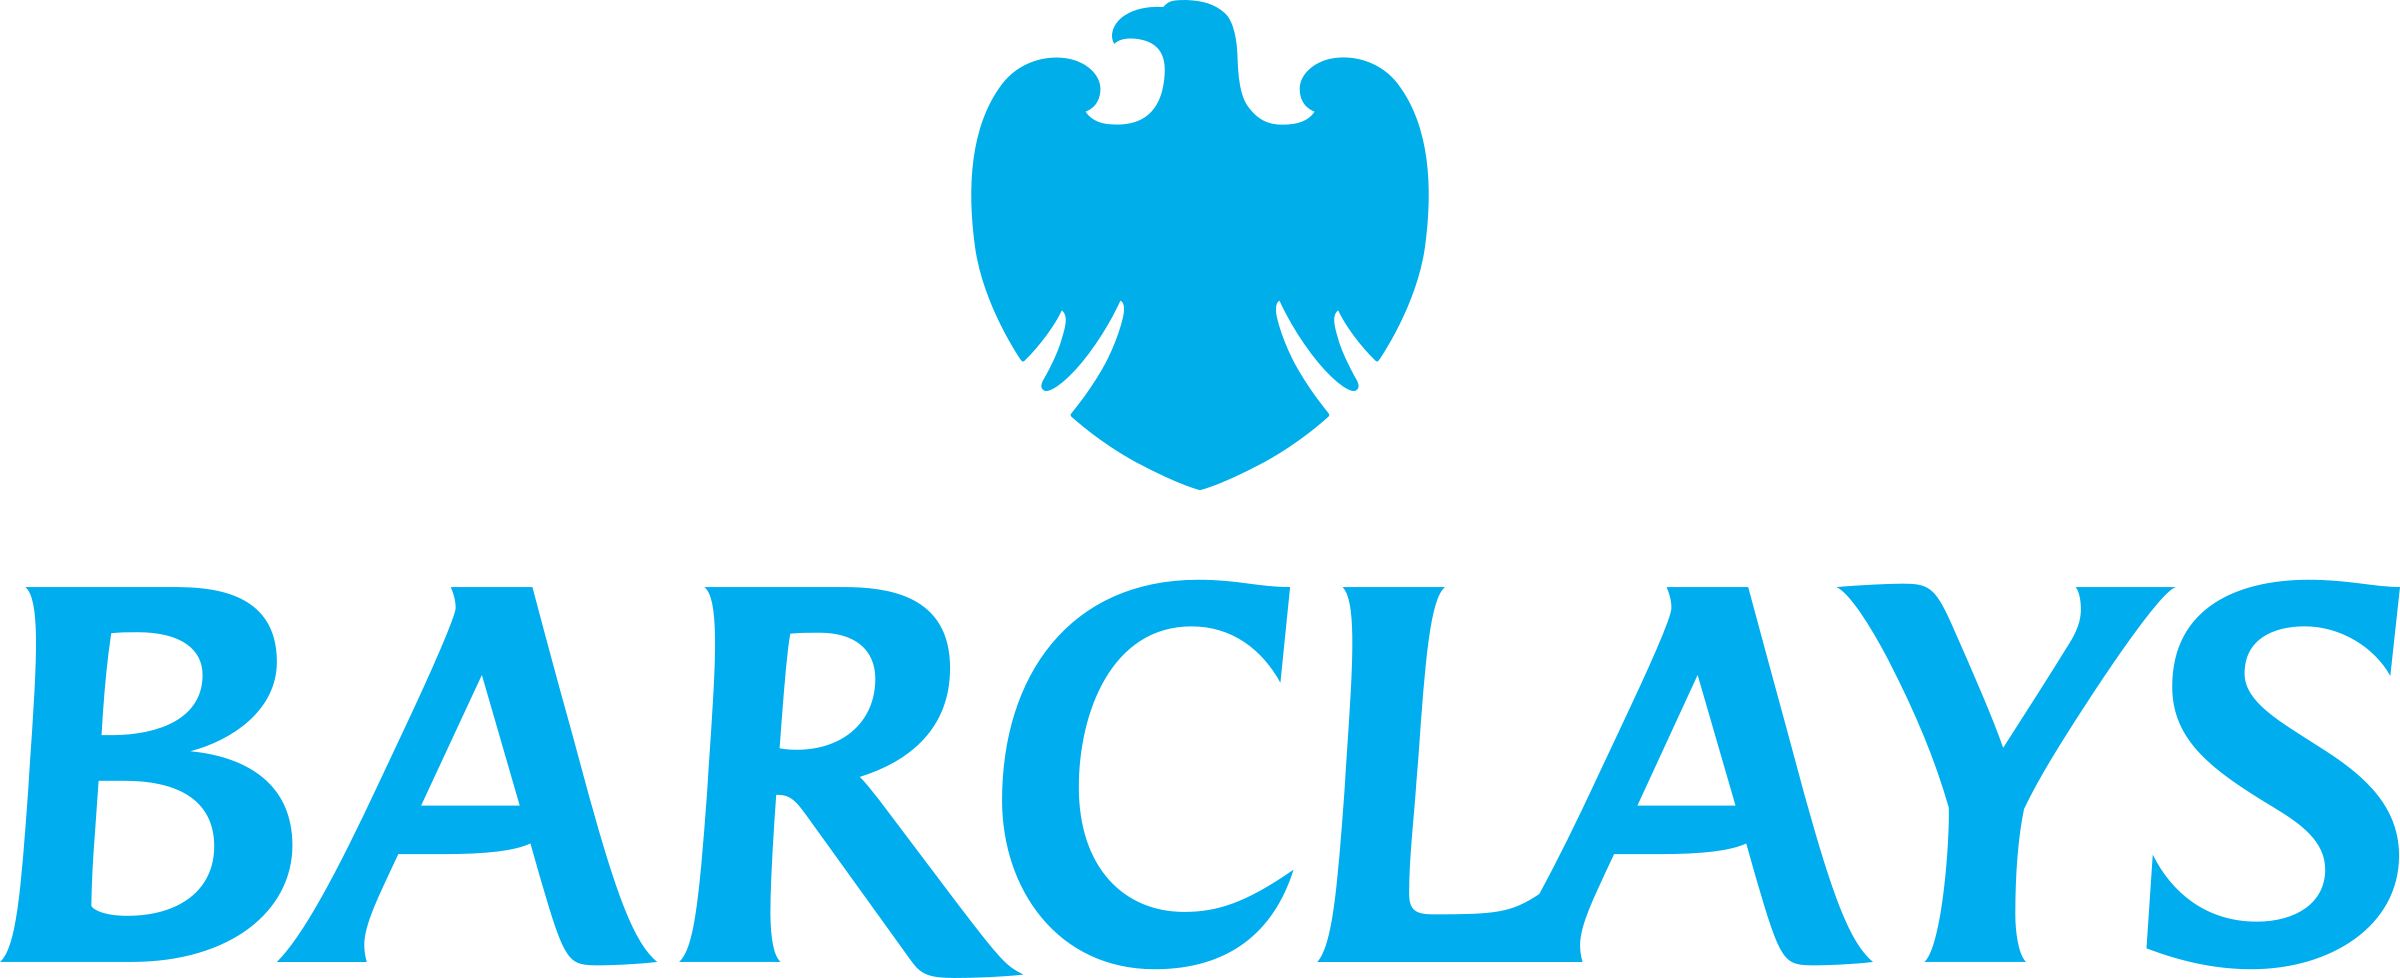 barclays-4-logo-png-transparent